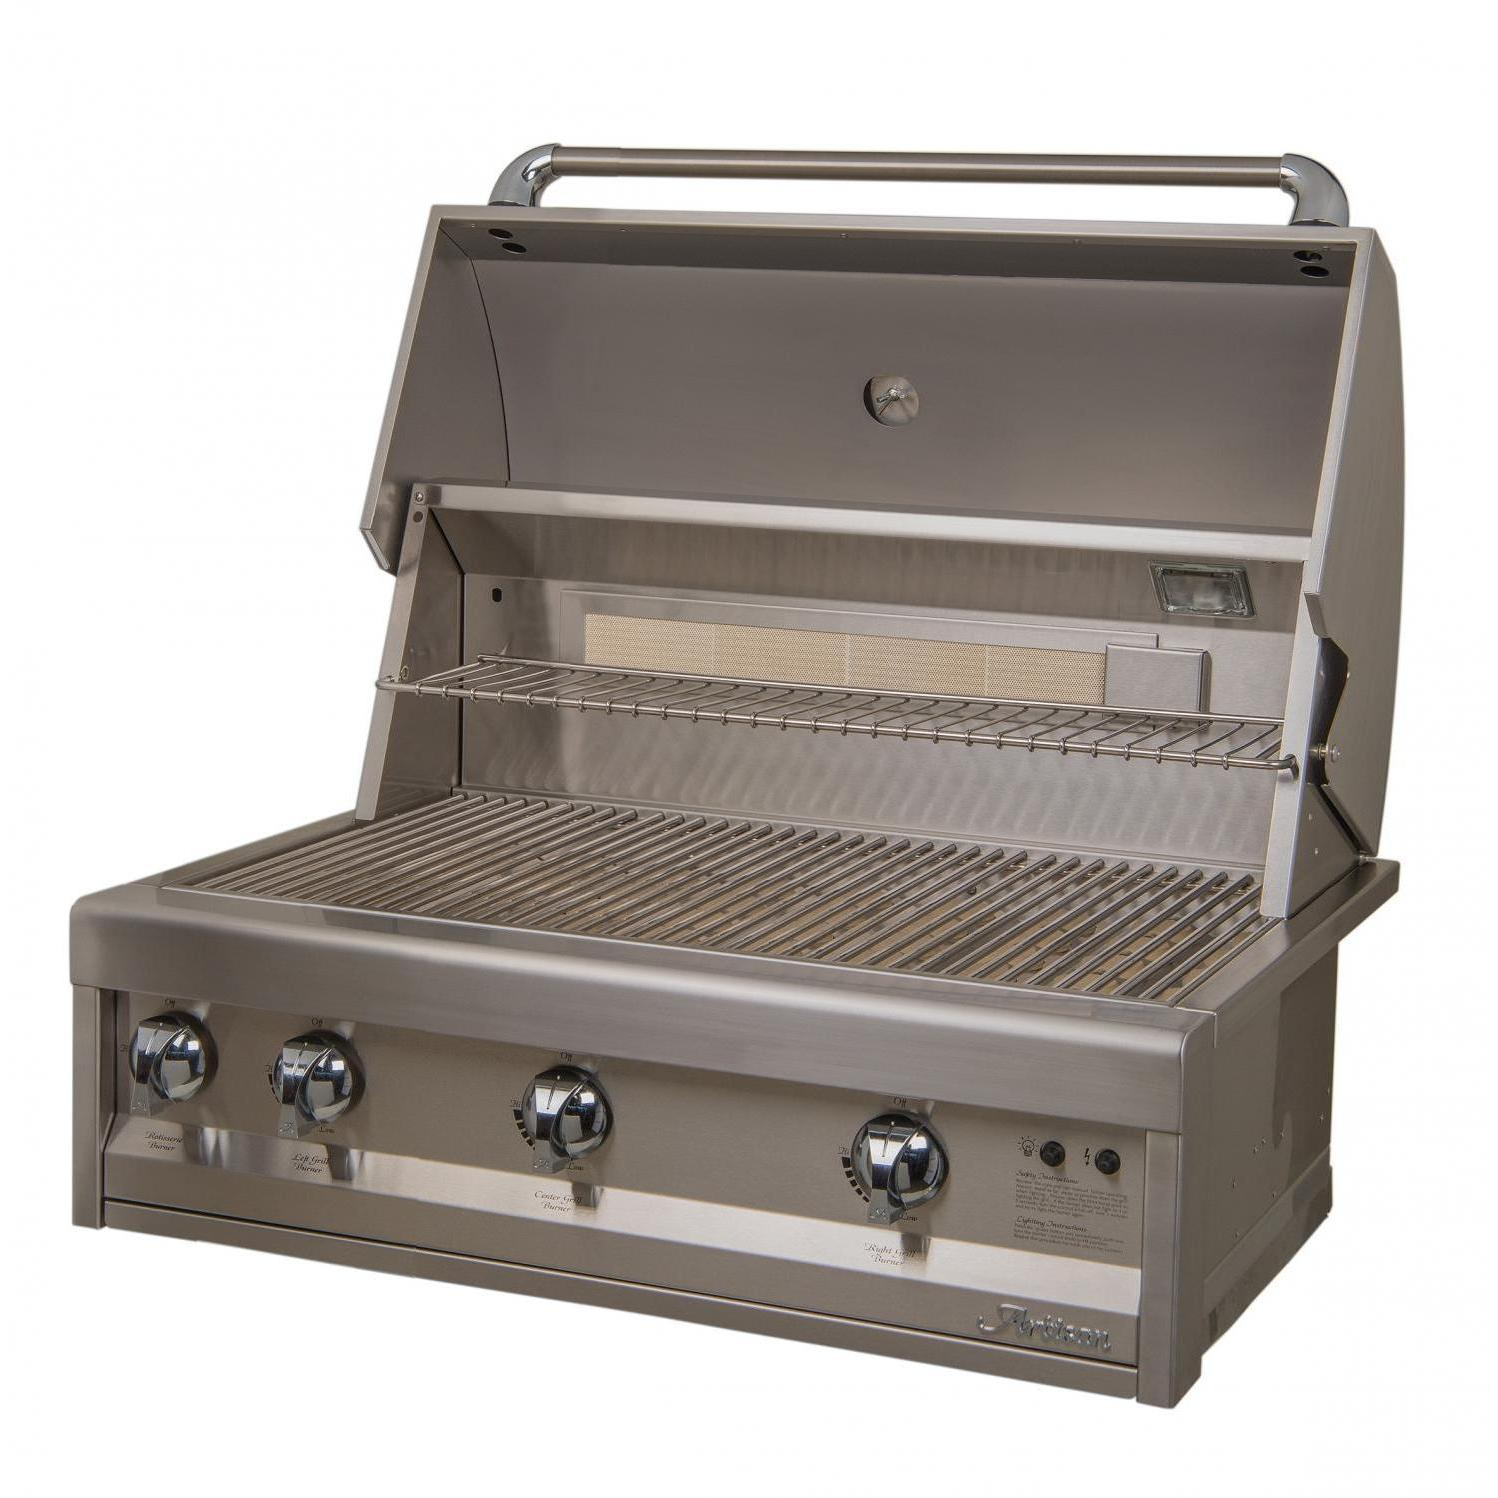 Artisan Classic By Alfresco 32-Inch Built-in Propane Gas Grill With Rotisserie 2872696